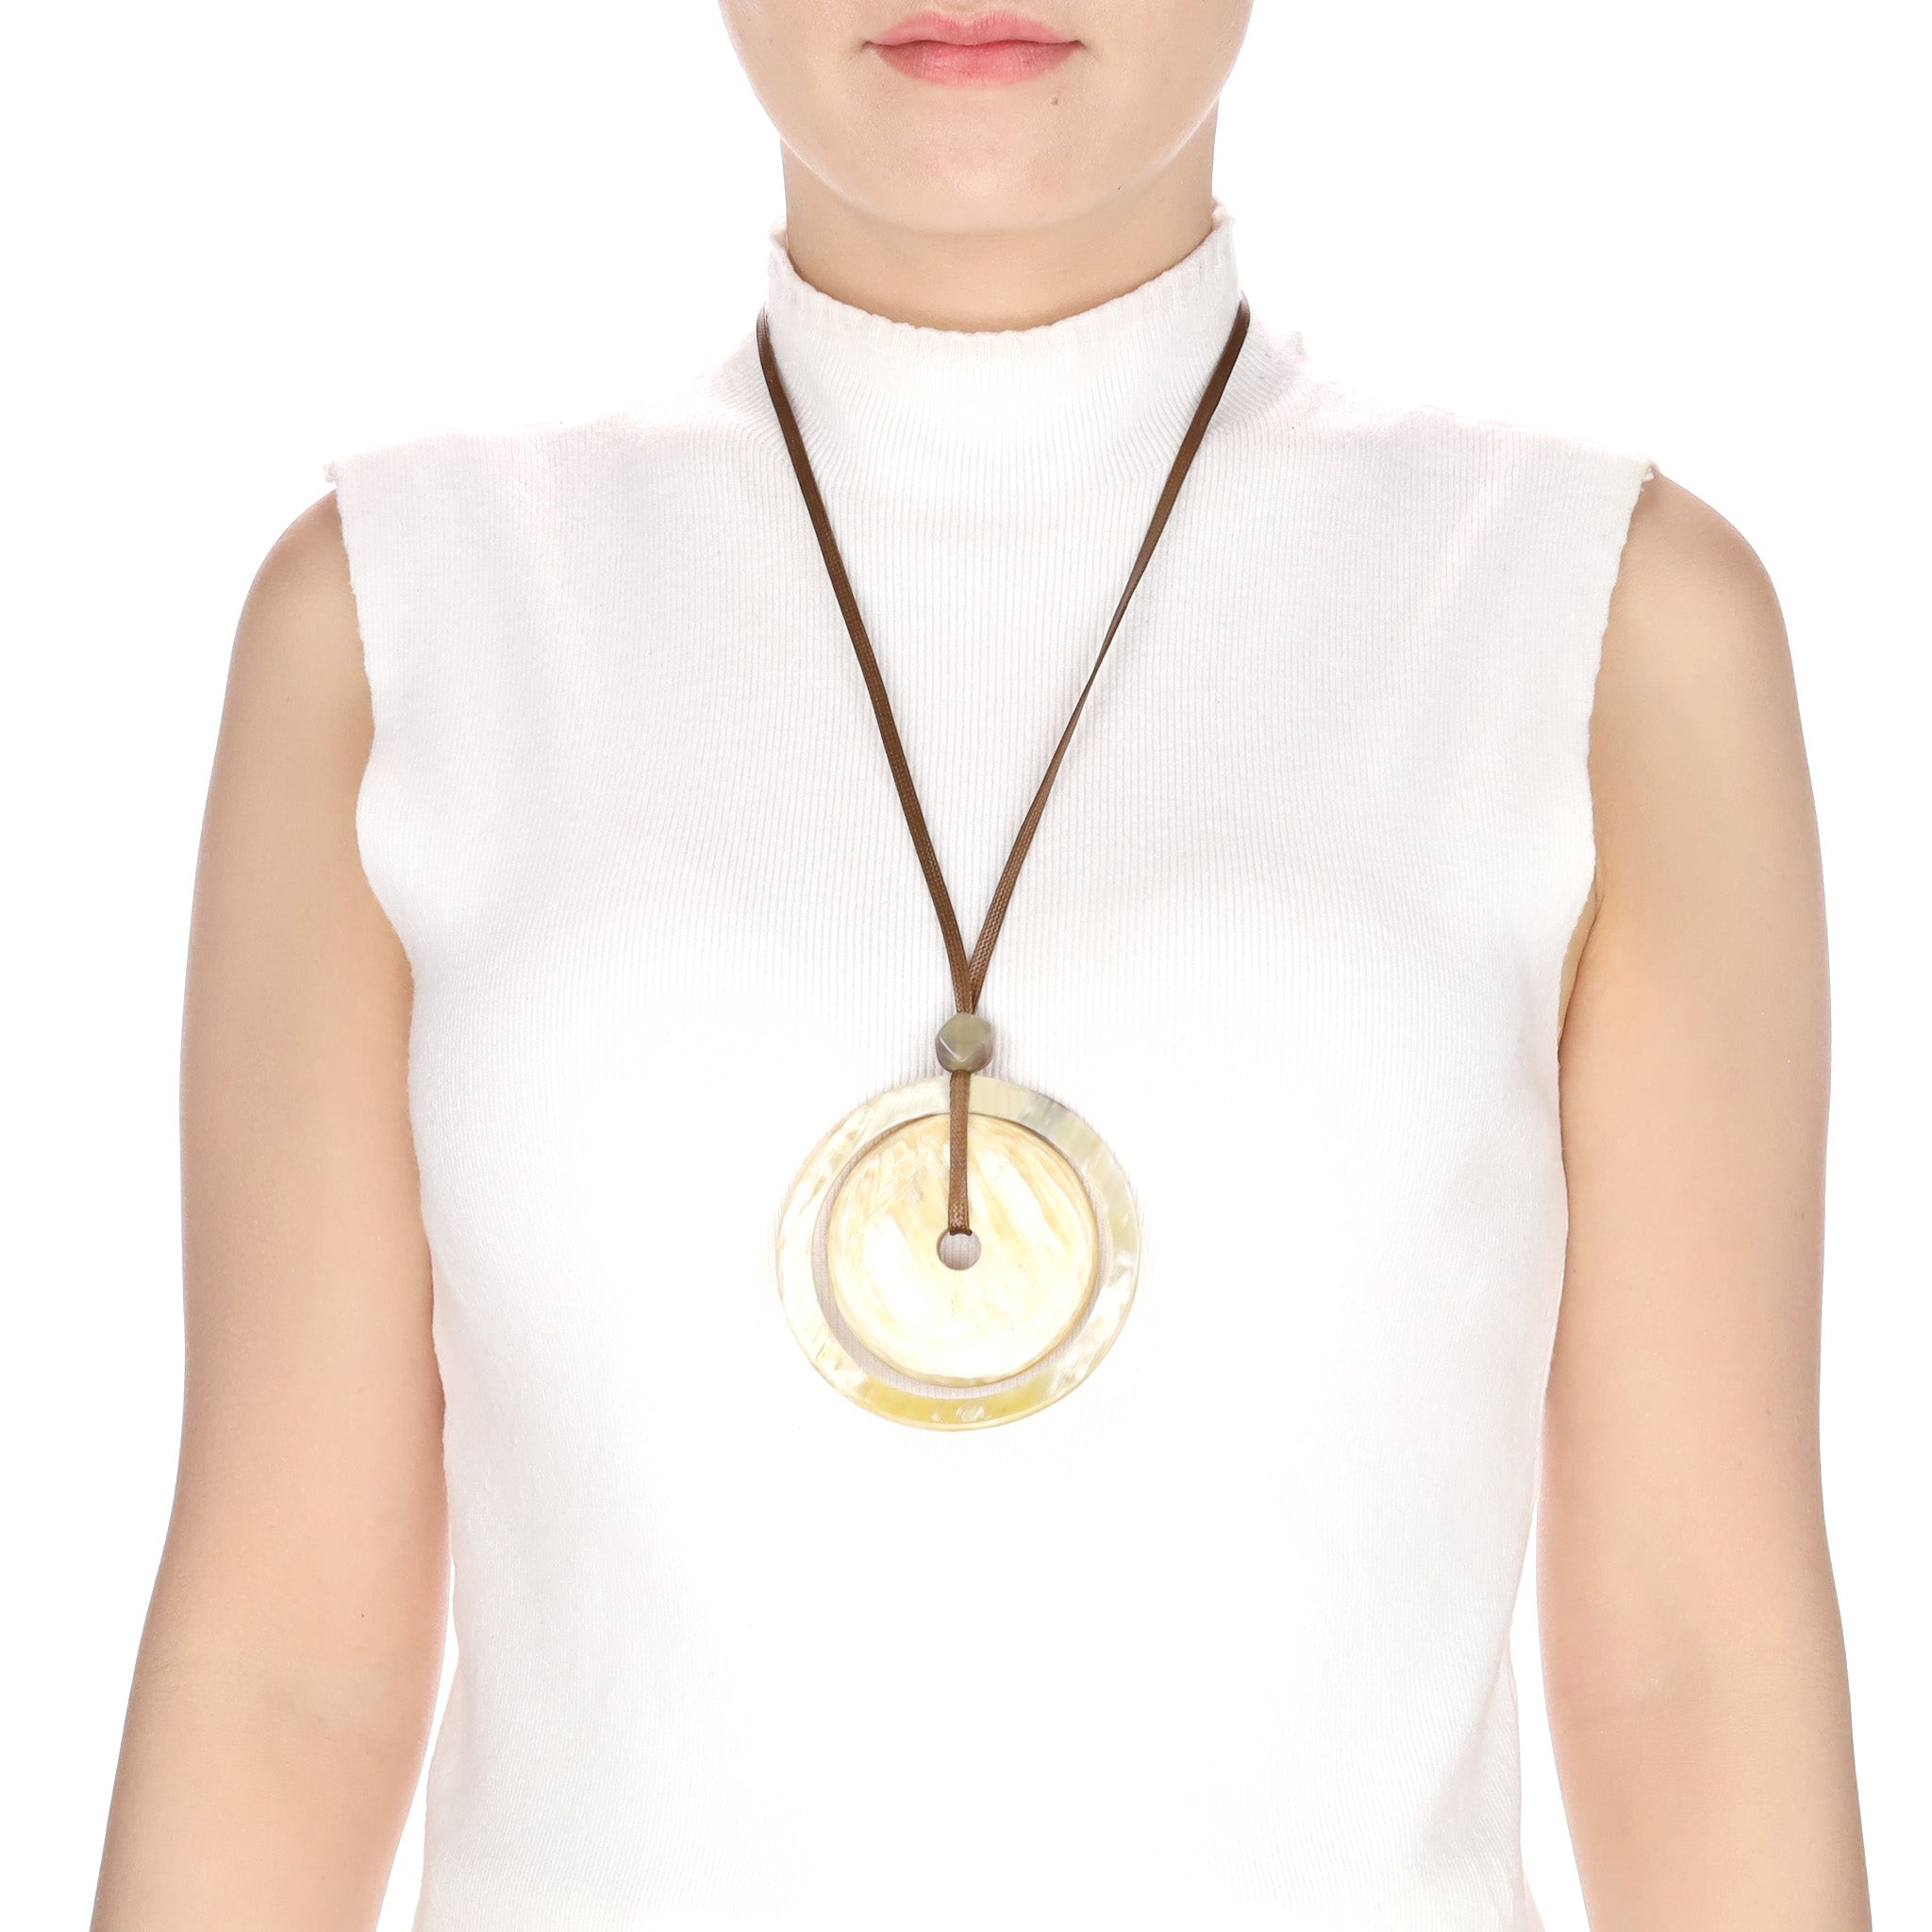 Buffalo Horn Concentric Circle Pendant on Cord On Body View - Vivo Direct